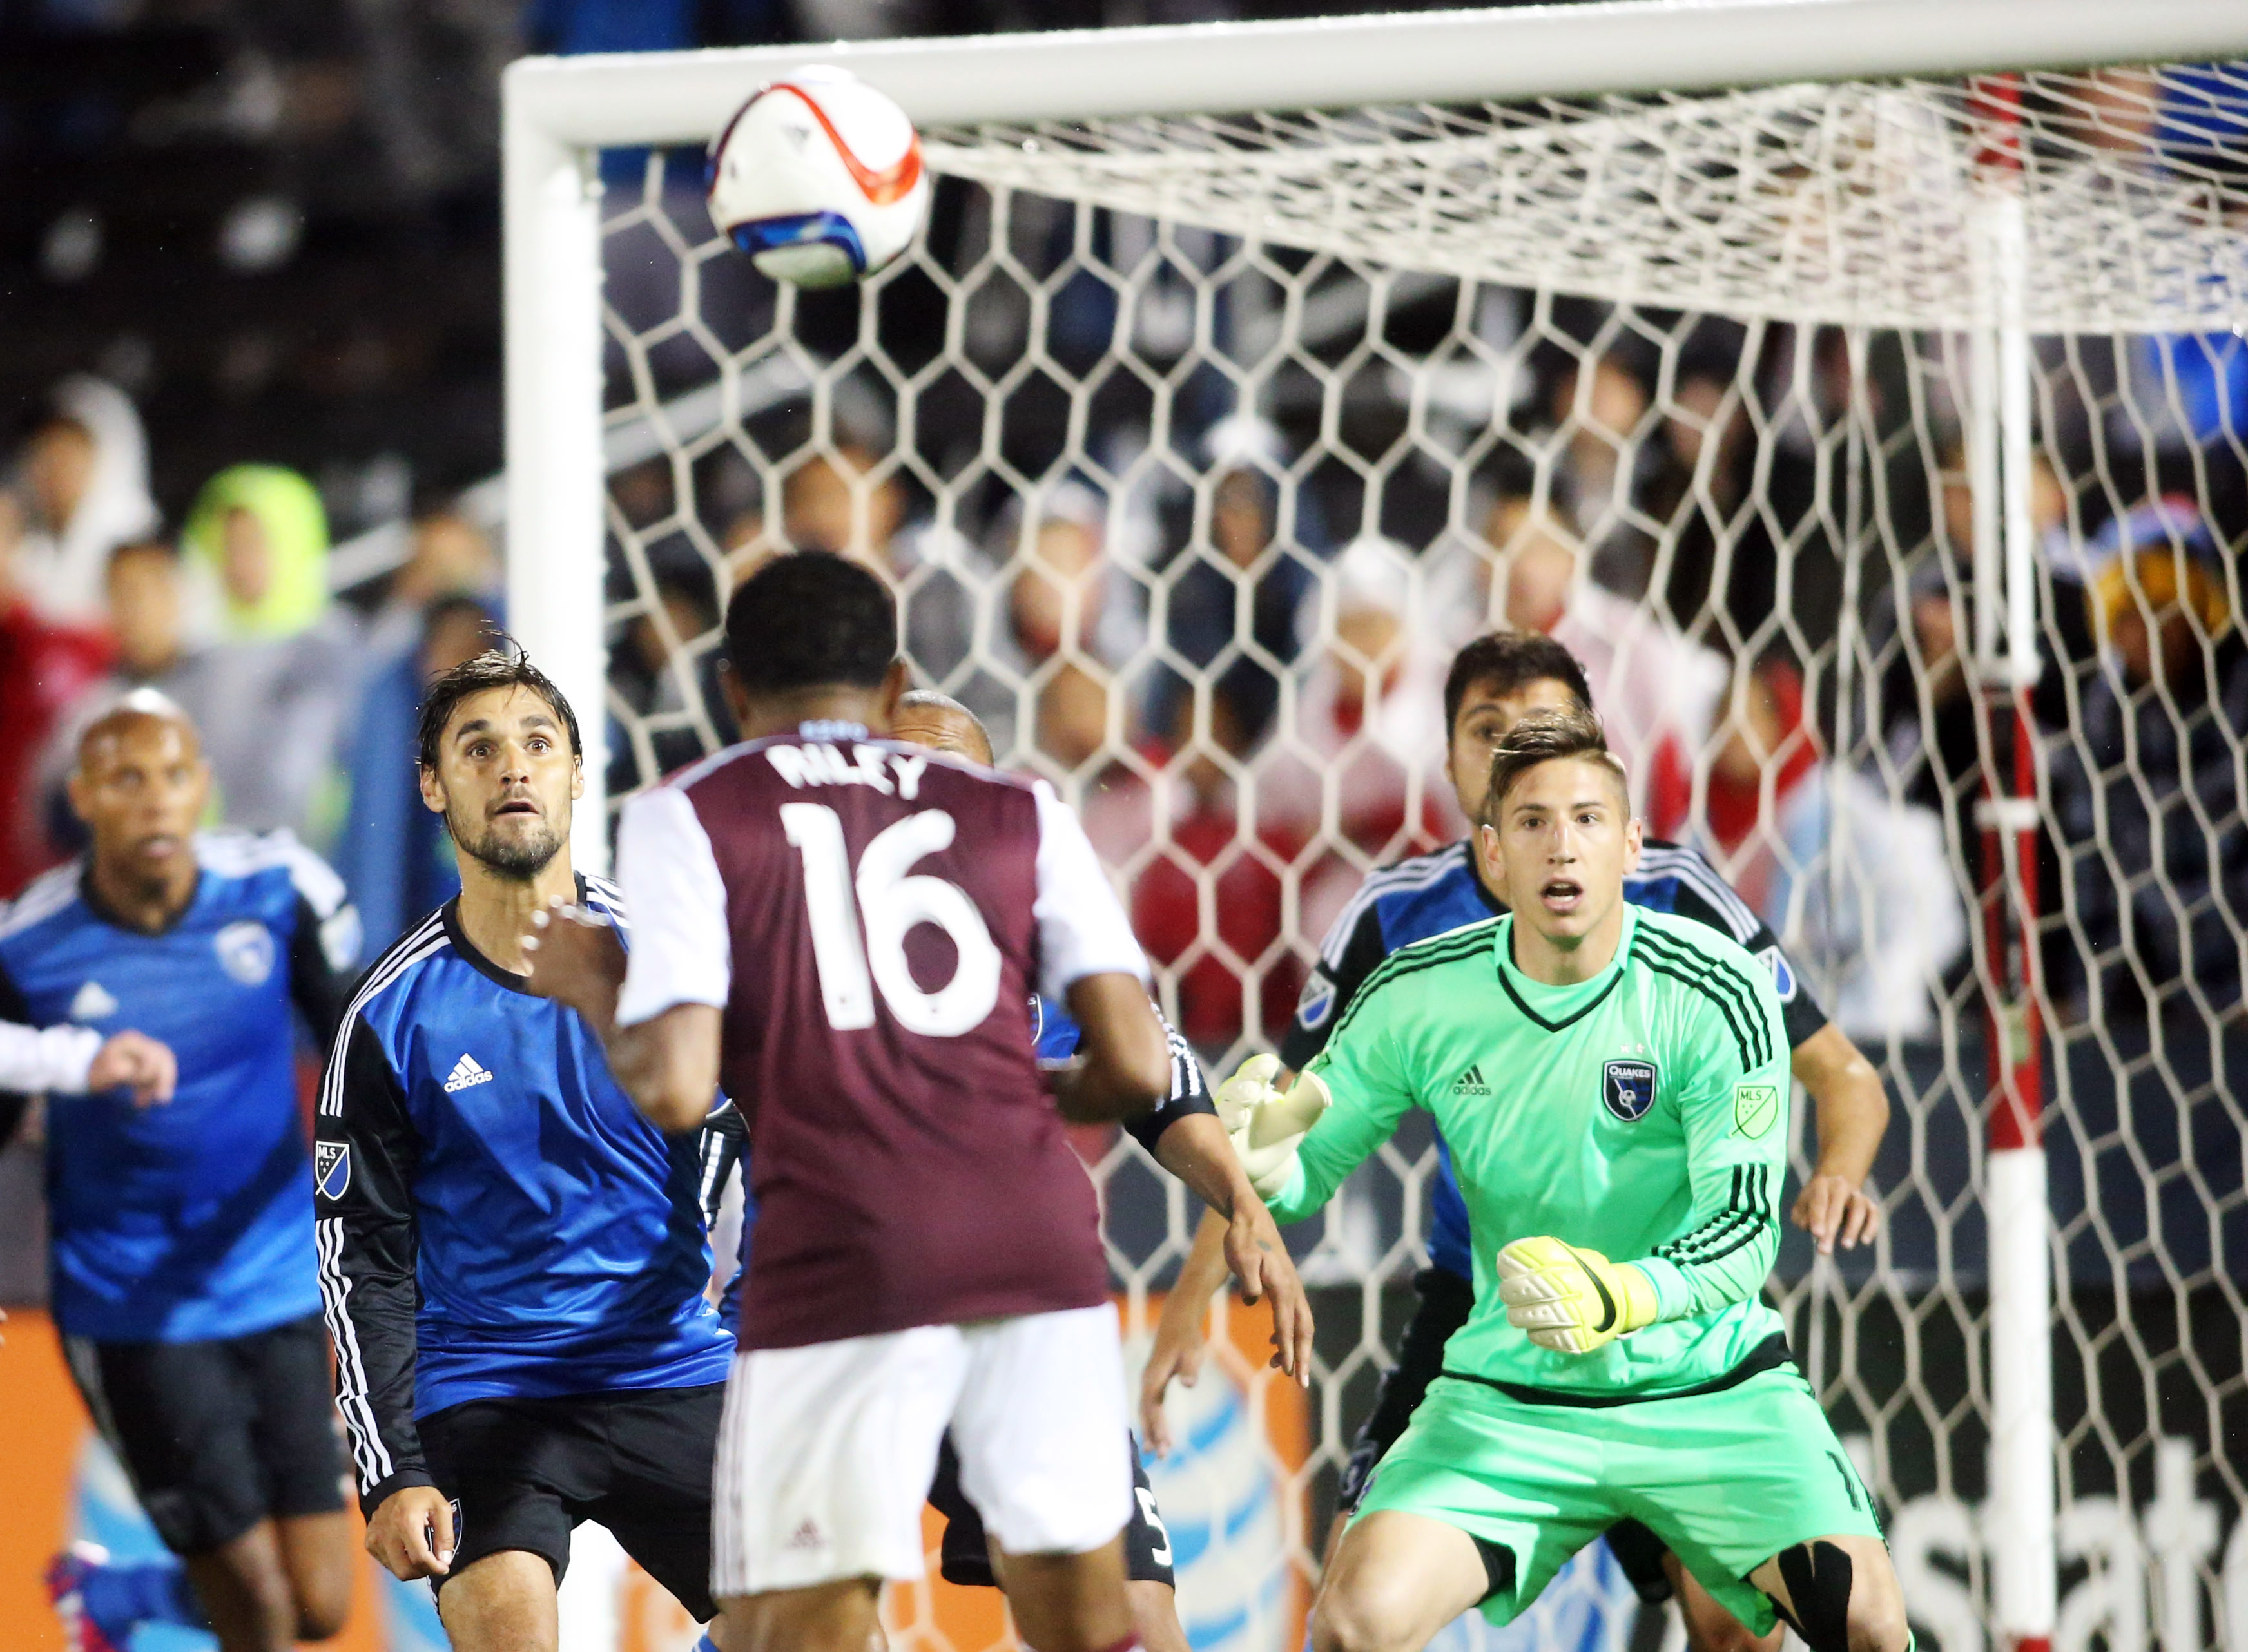 James Riley heading home the equalizer in stoppage time.